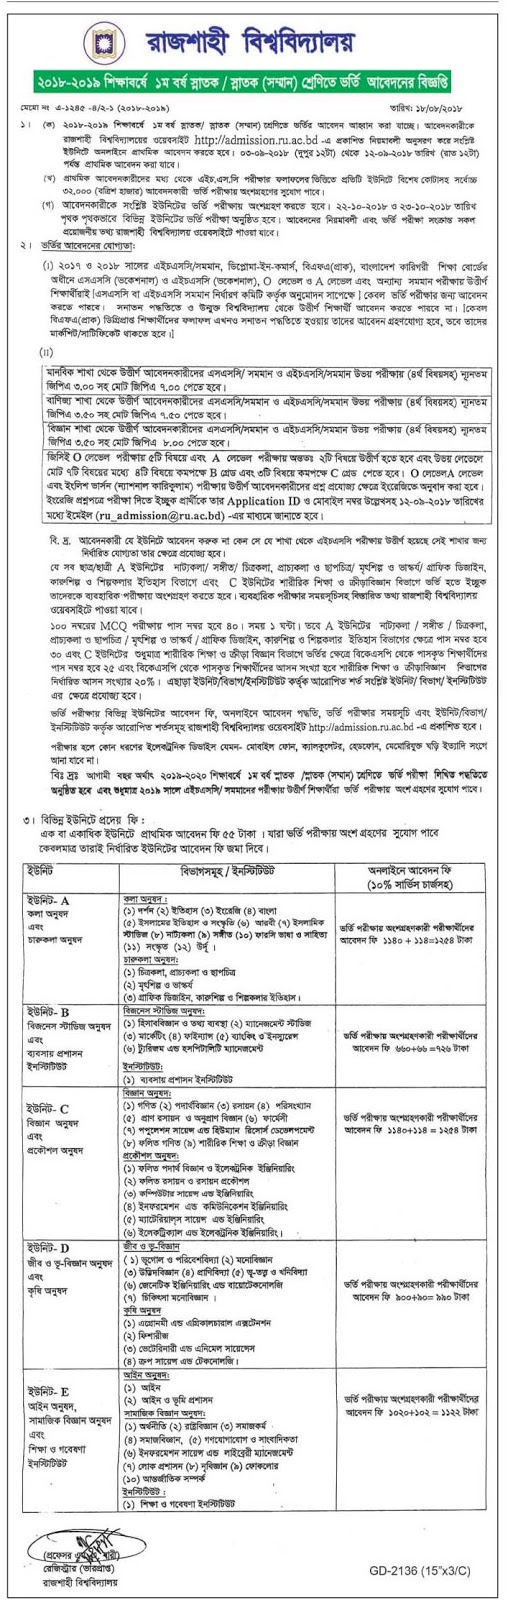 University of Rajshahi Admission Test Circular 2018-19